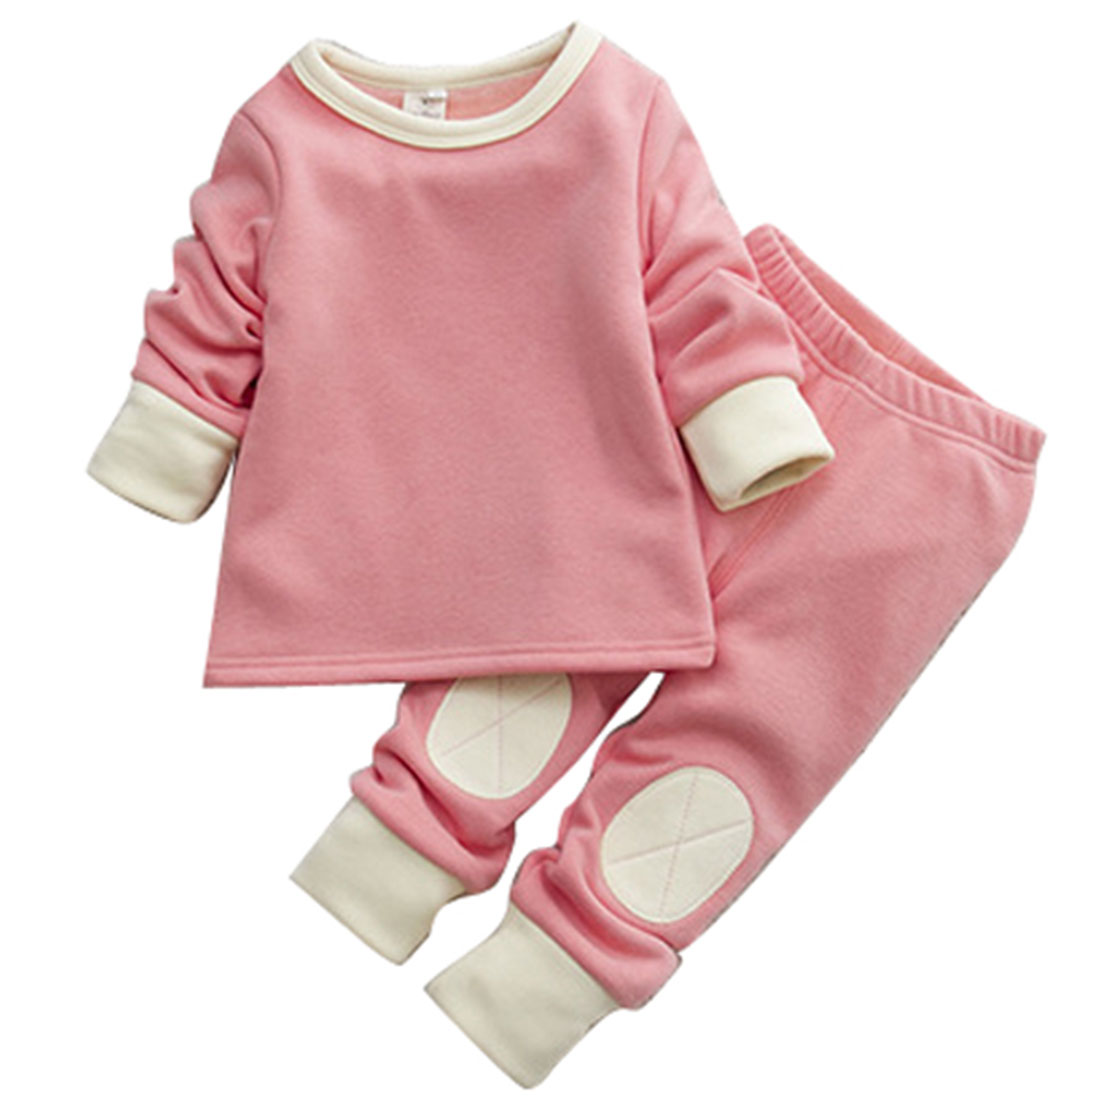 Baby Boys Girls Infant Warm Clothing Sets Cotton 2017 New Autumn Winter Long Sleeve Shirt + Long Pants Lovely Cute Pink Coffee